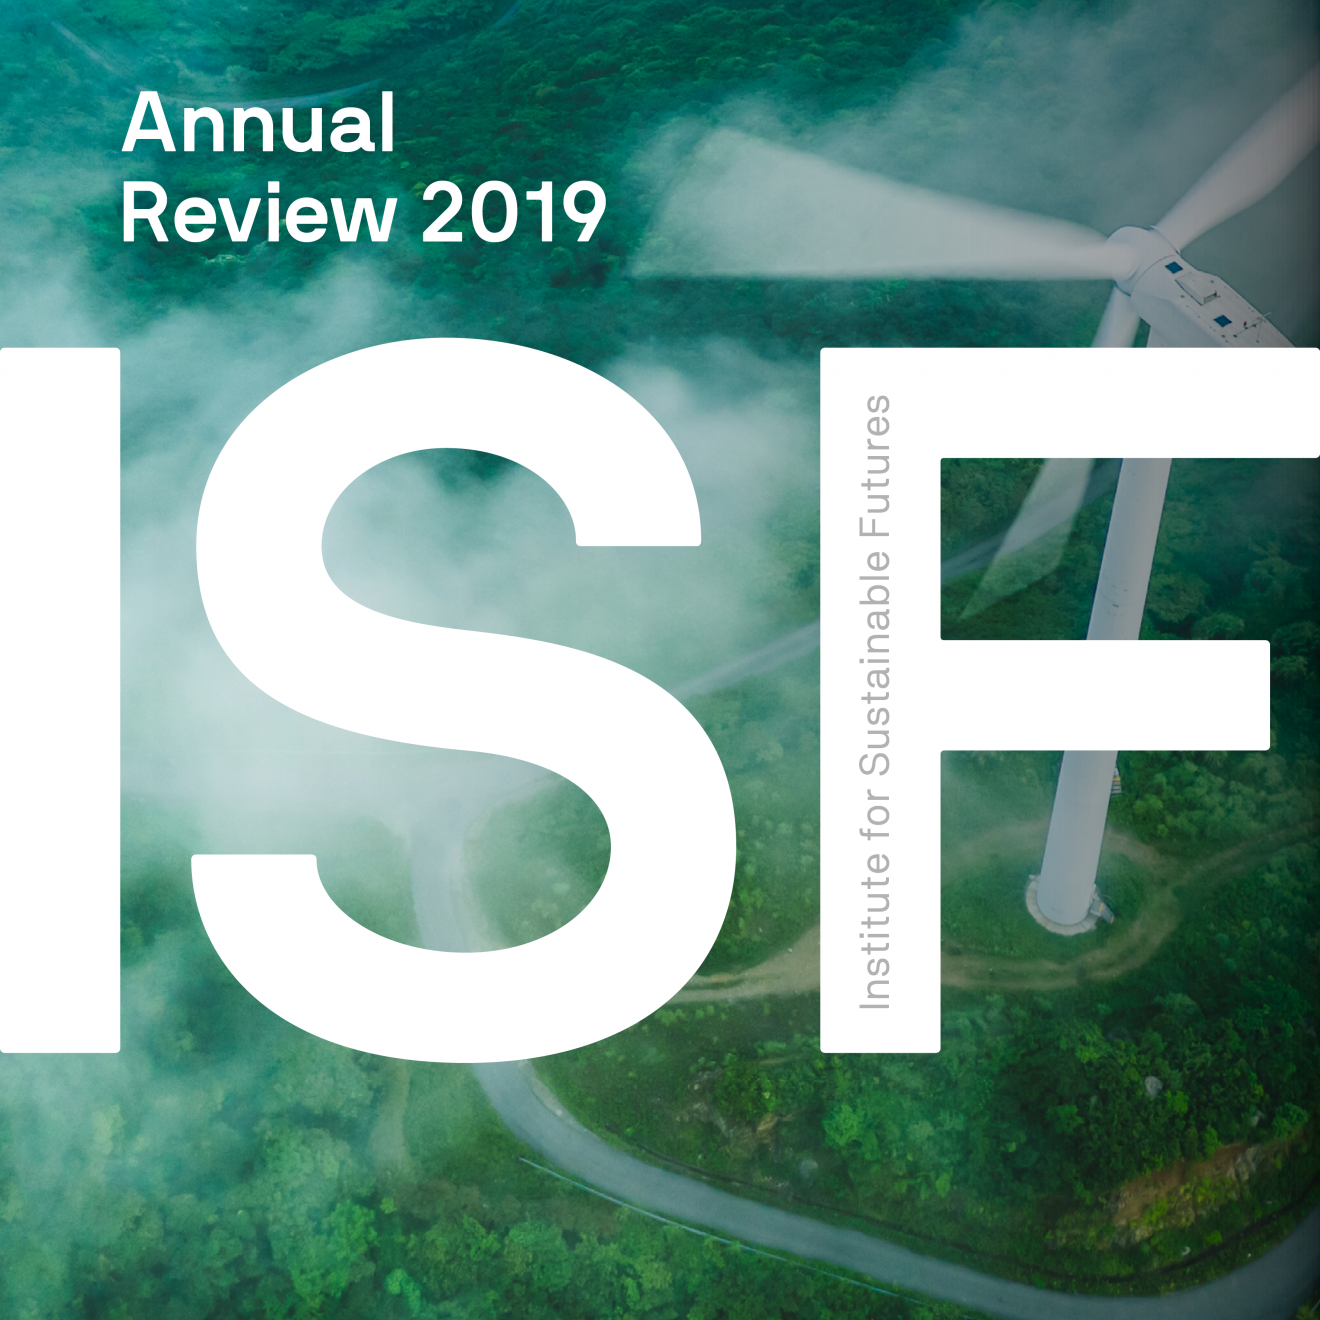 ISF 2019 Annual Review